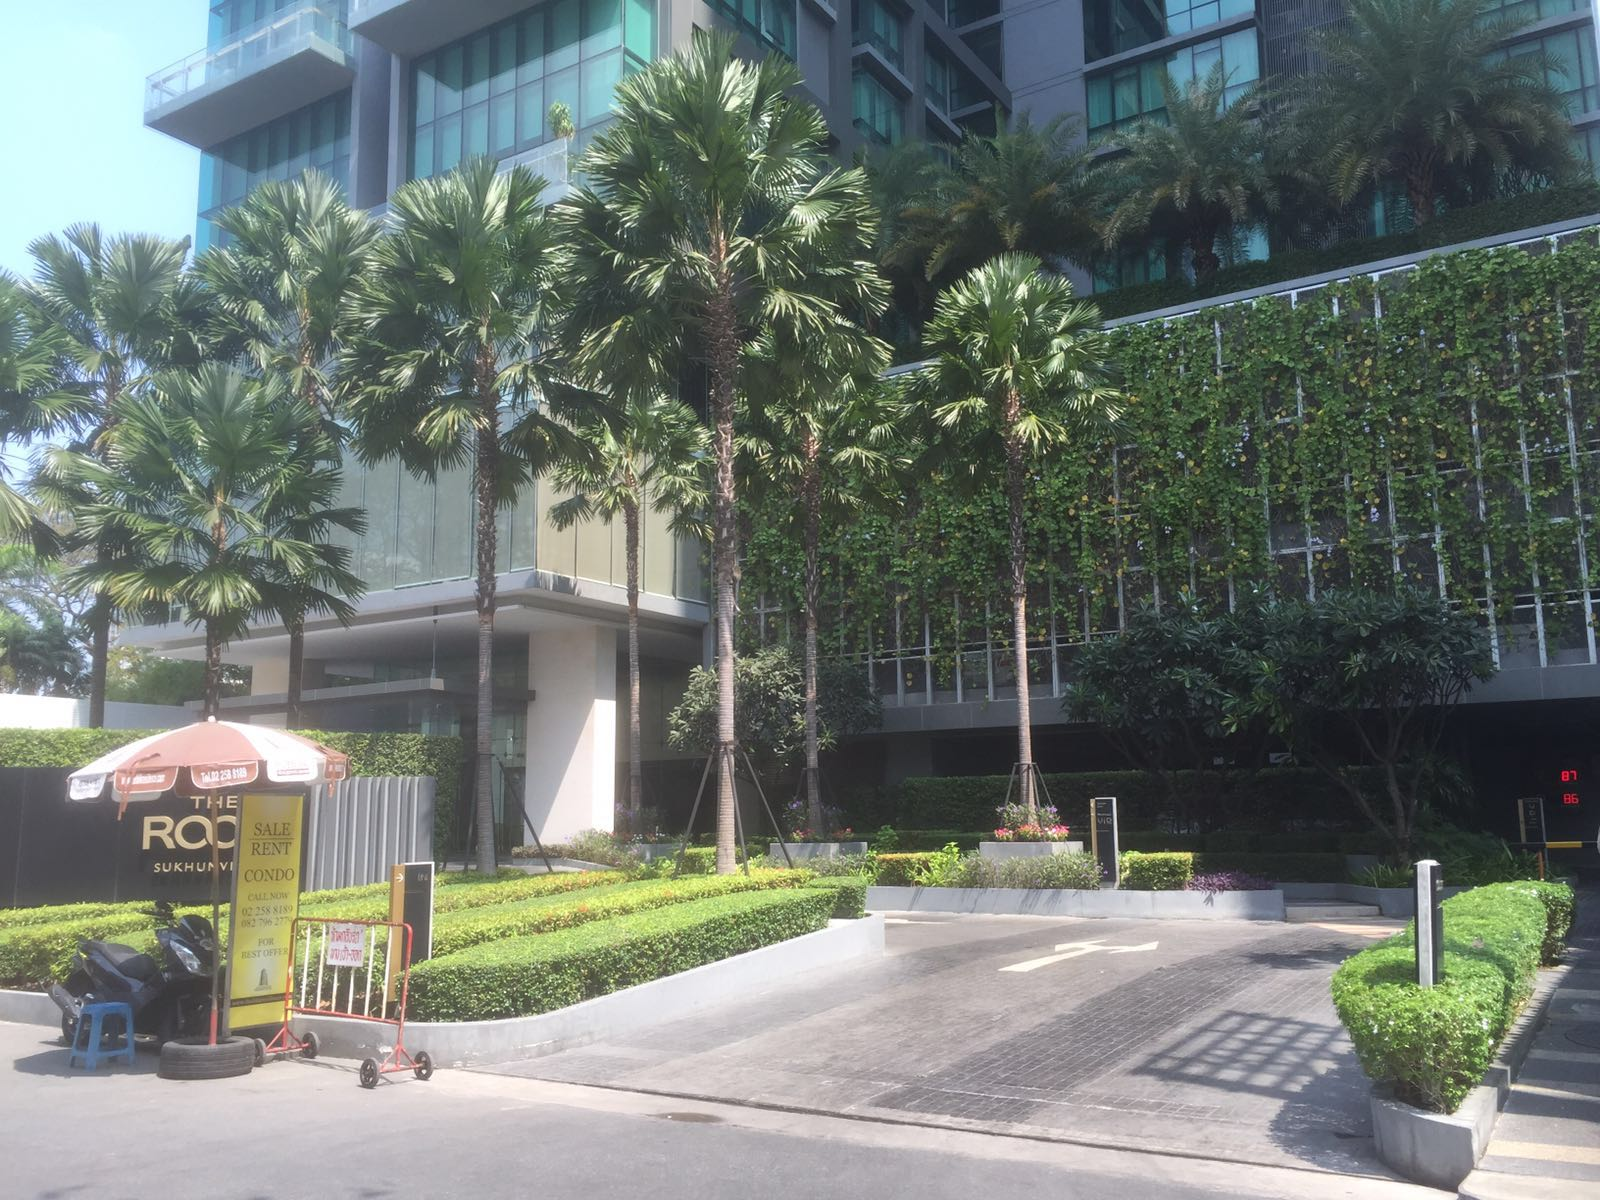 RE/MAX All Star Realty Agency's The Room Sukhumvit 21 large one bedder (53sqm) for sale/rent cheap 5